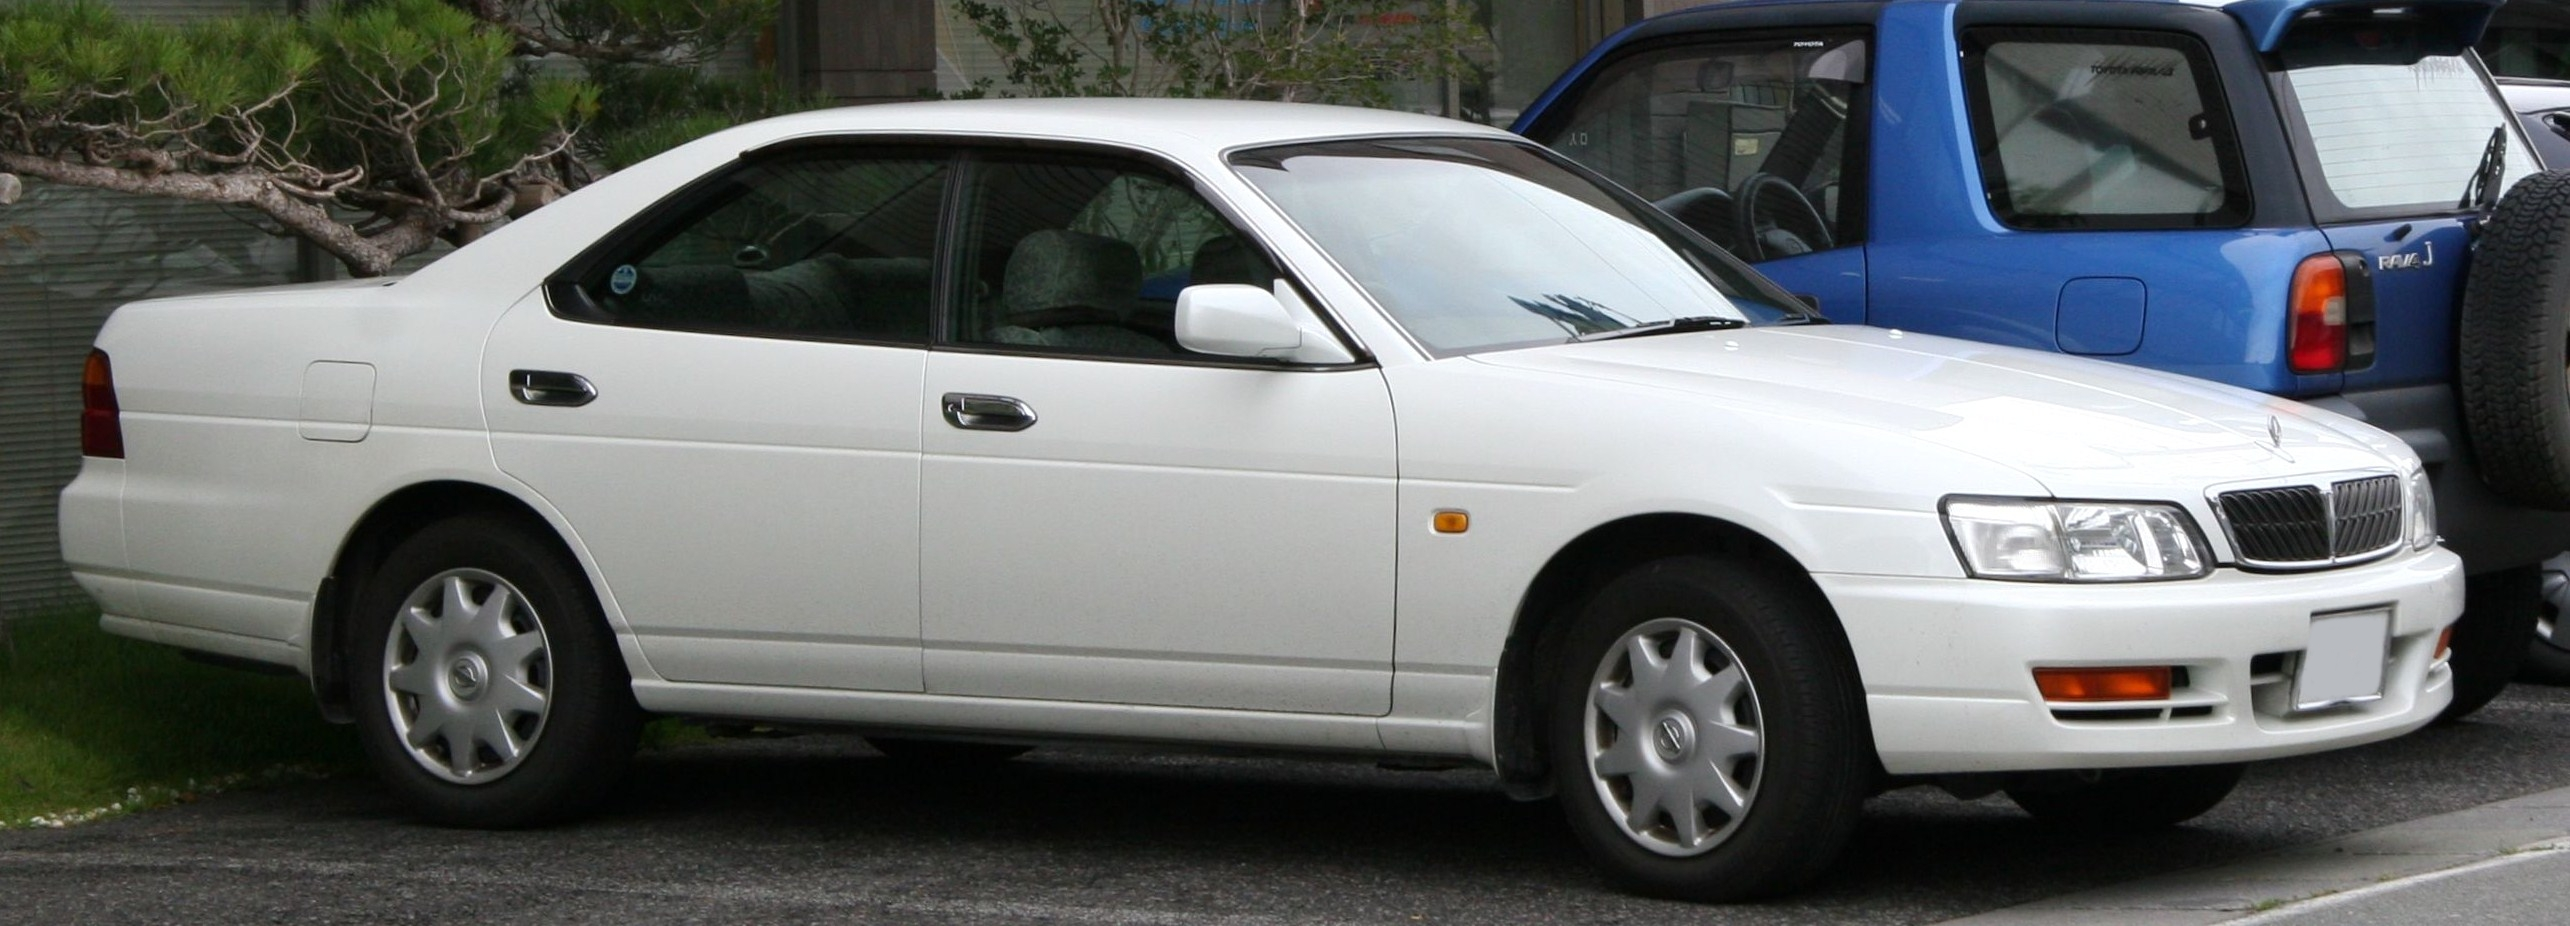 Nissan Laurel Wikipedia